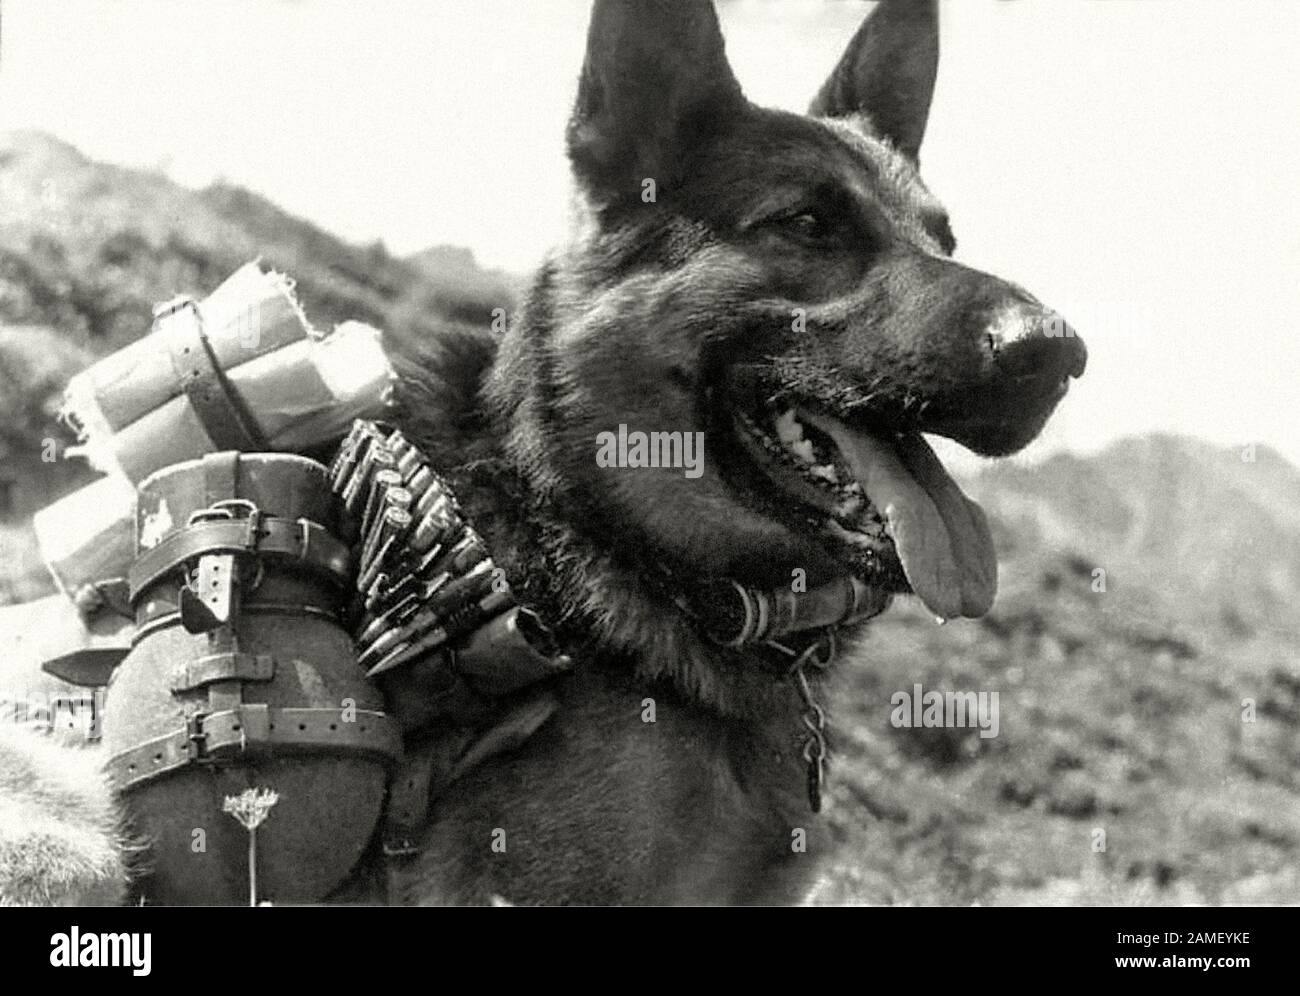 Old German Shepherd Dogs High Resolution Stock Photography And Images Alamy